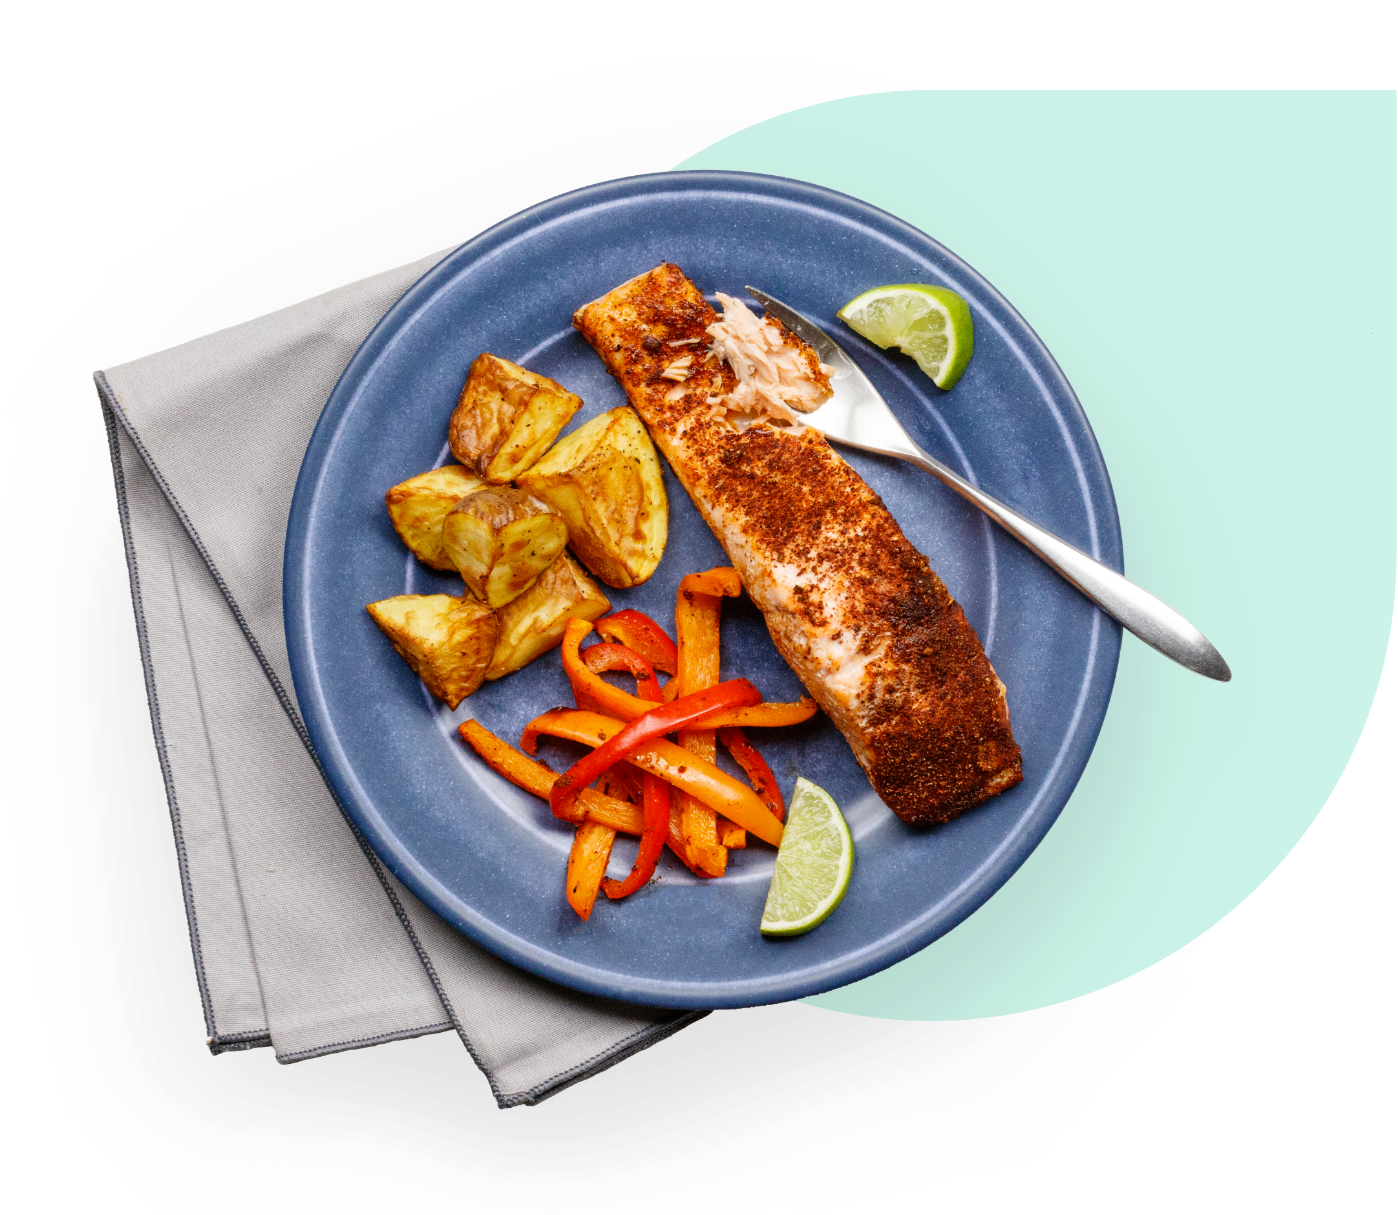 Cooked salmon on  plate with vegetables ready to be eaten